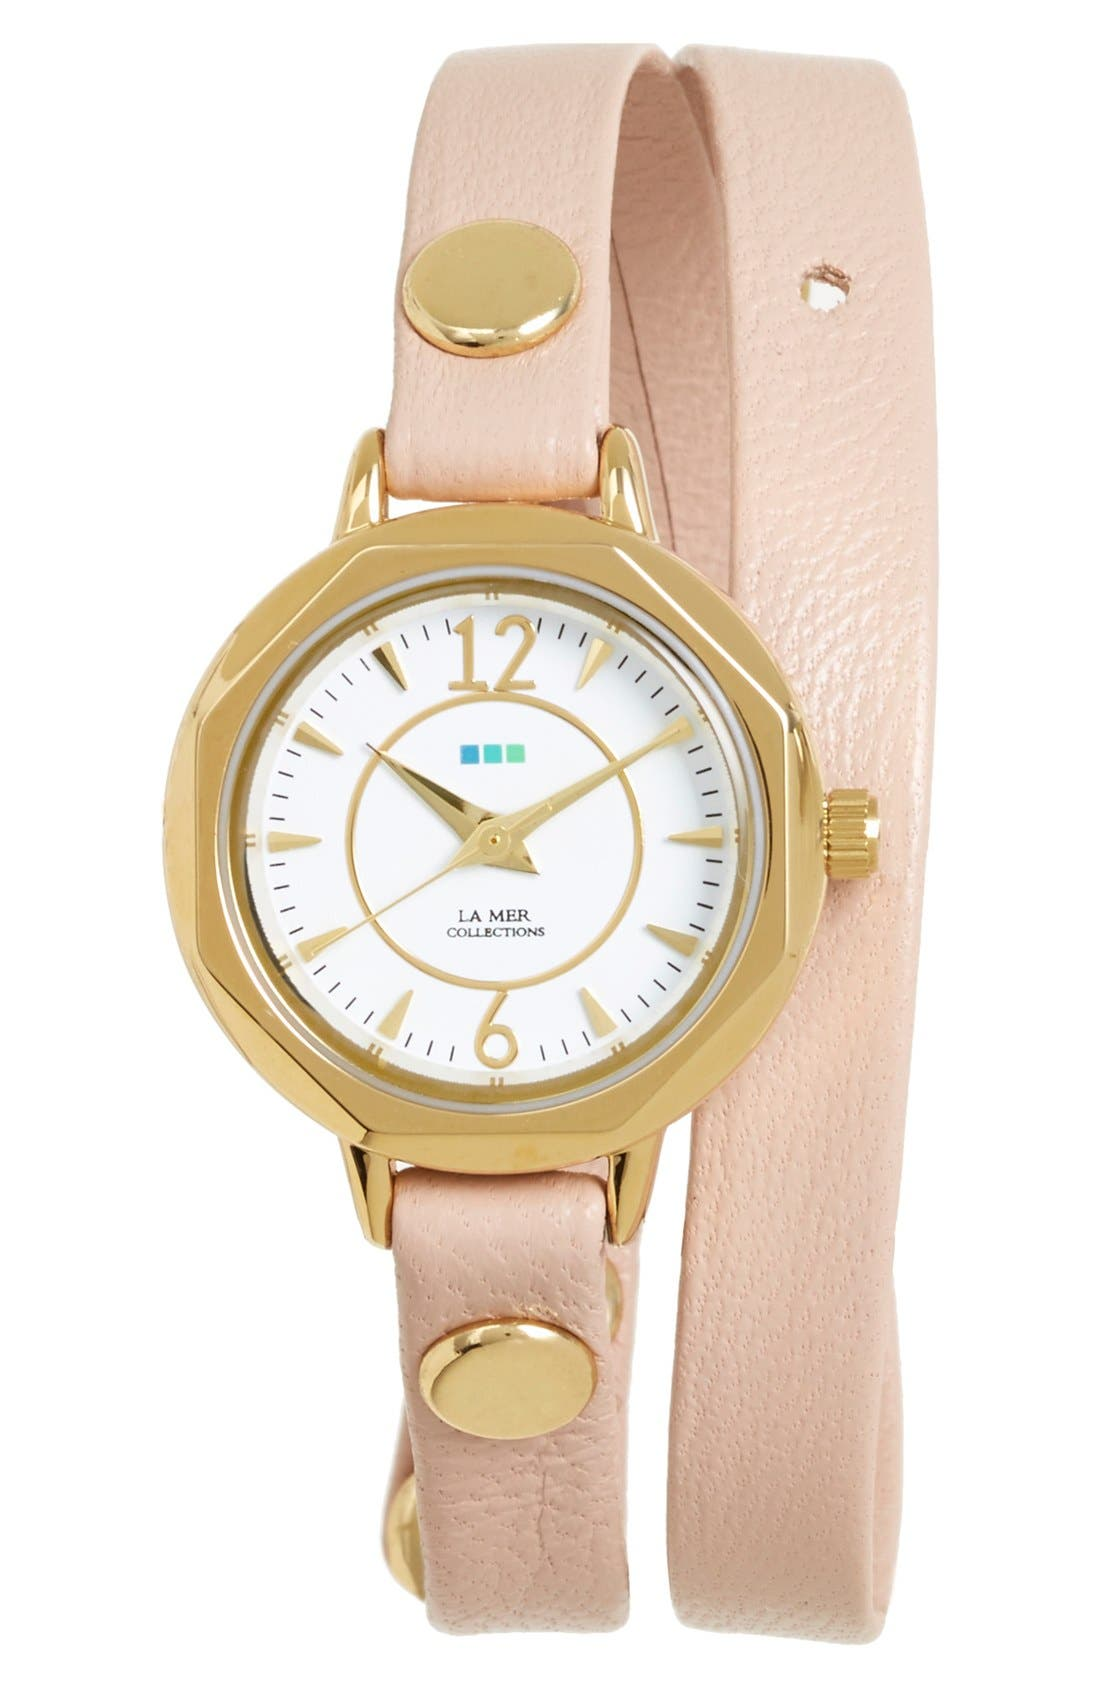 Main Image - La Mer Collections 'Del Mar' Leather Strap Wrap Watch, 19mm